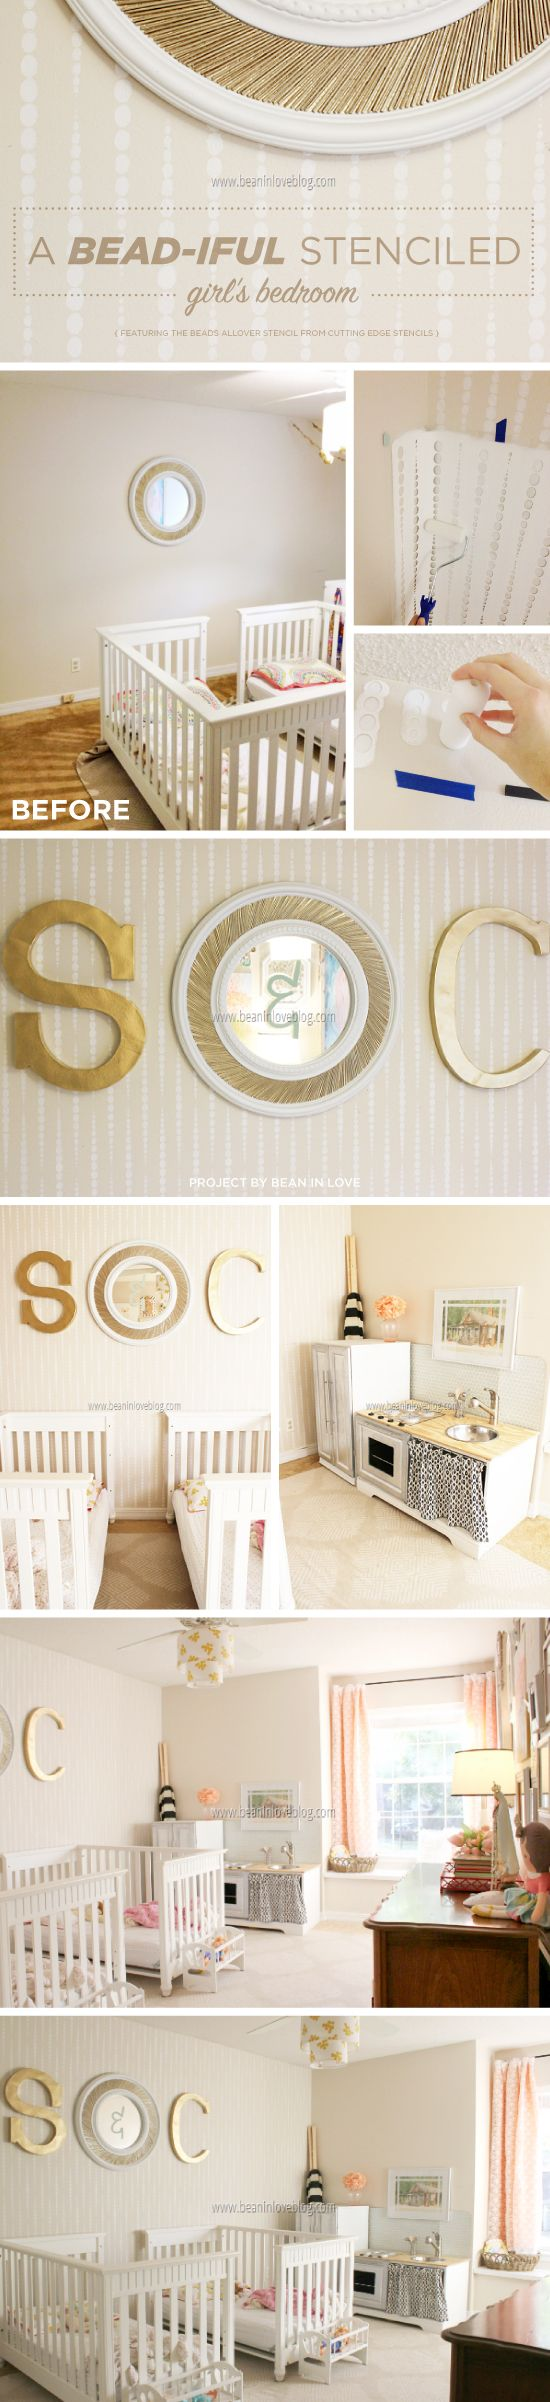 863 best from stencil stories images on pinterest cutting edge stencils shares a diy girl s stenciled bedroom using the beads allover stencil http